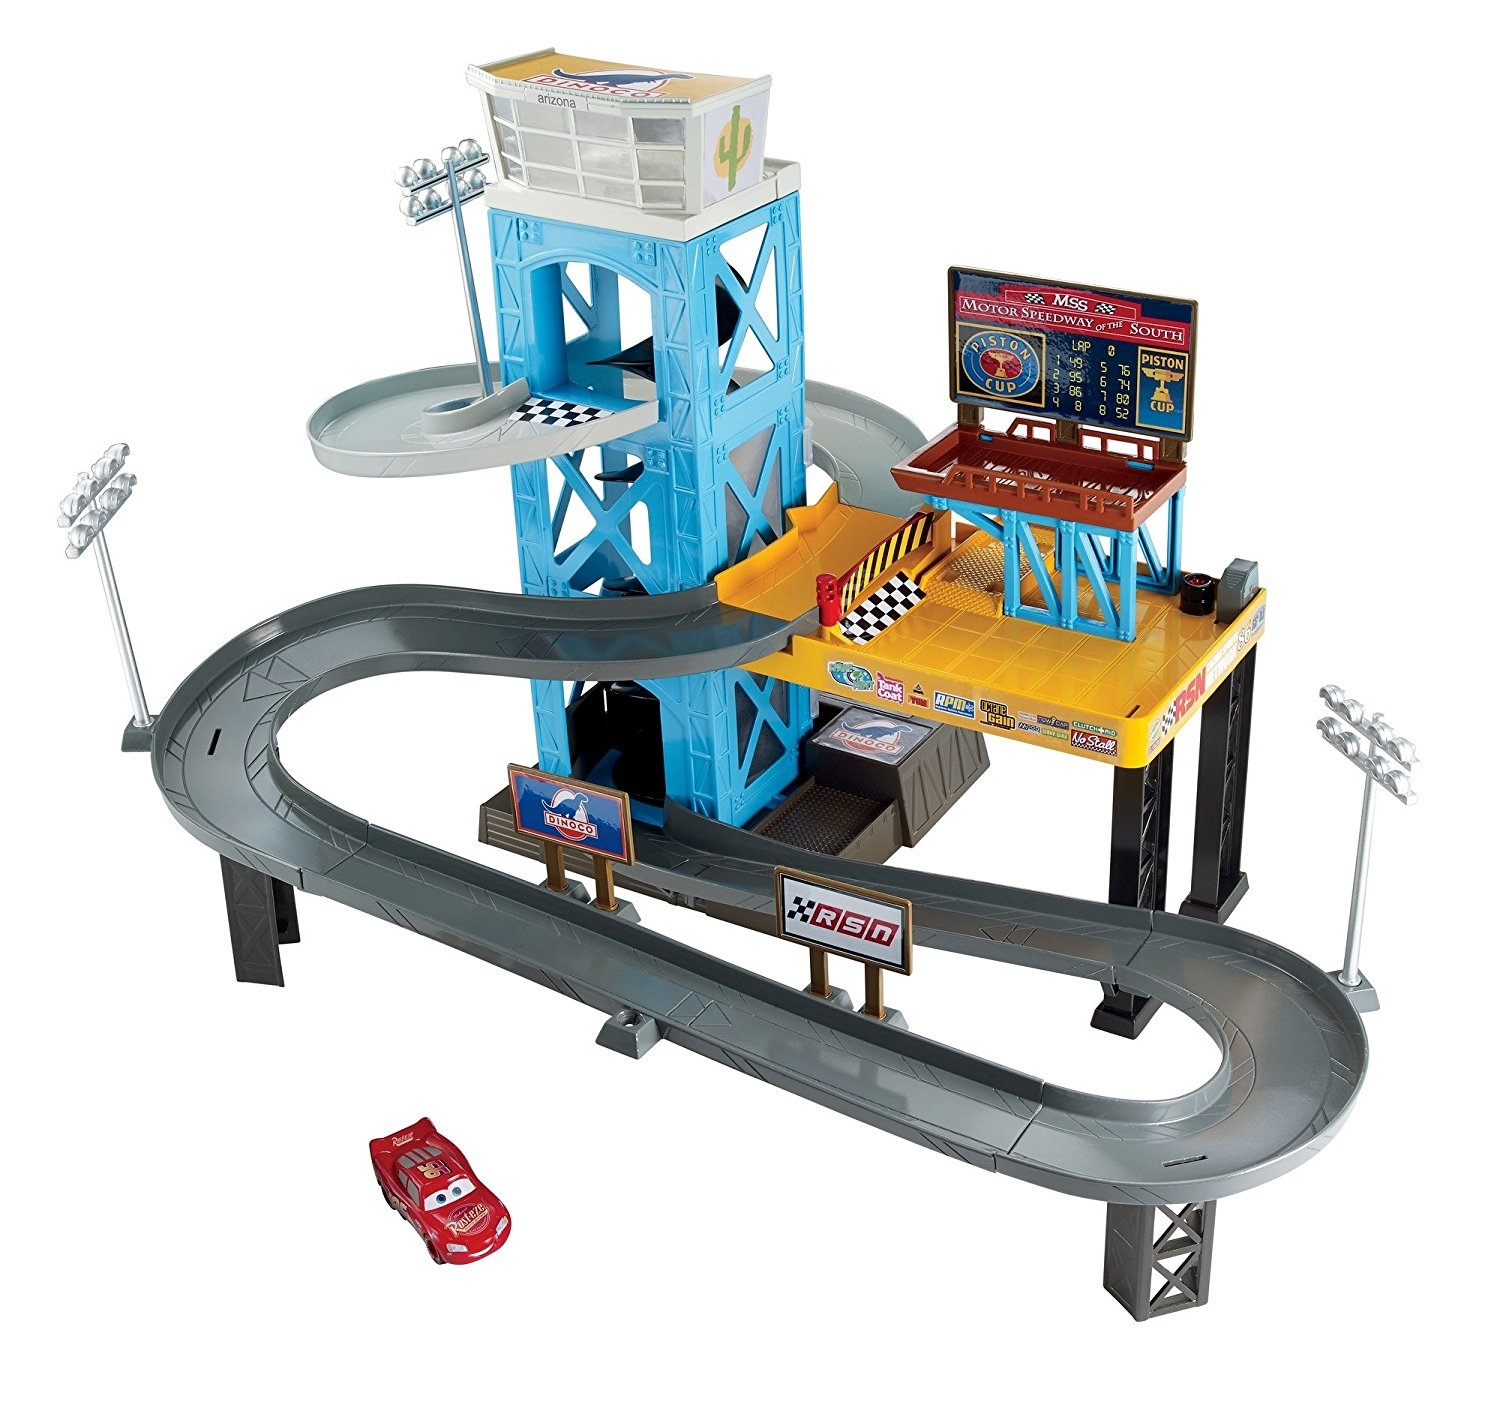 Disney Pixar Cars 3 Piston Cup Motorized Garage